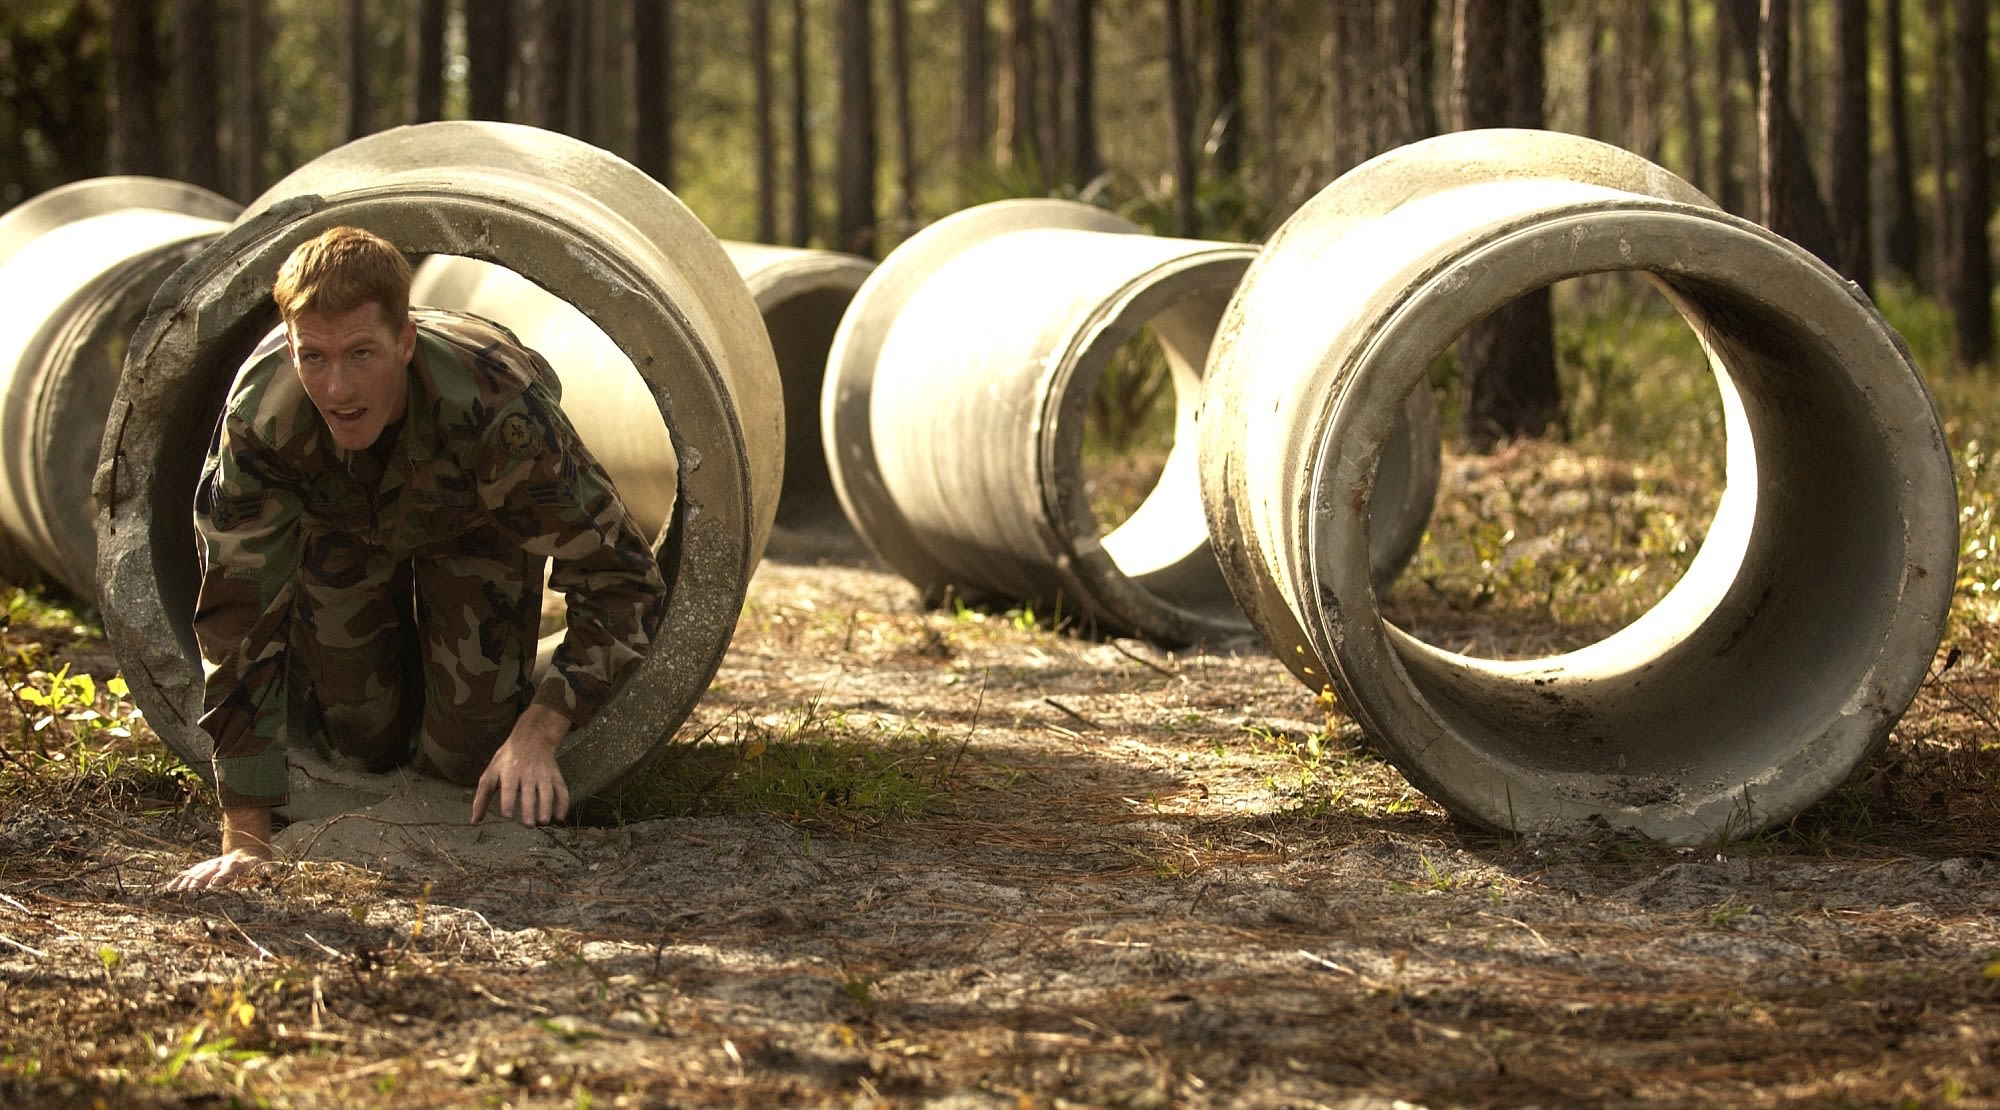 Chinese military assault course - Xmudder. Image